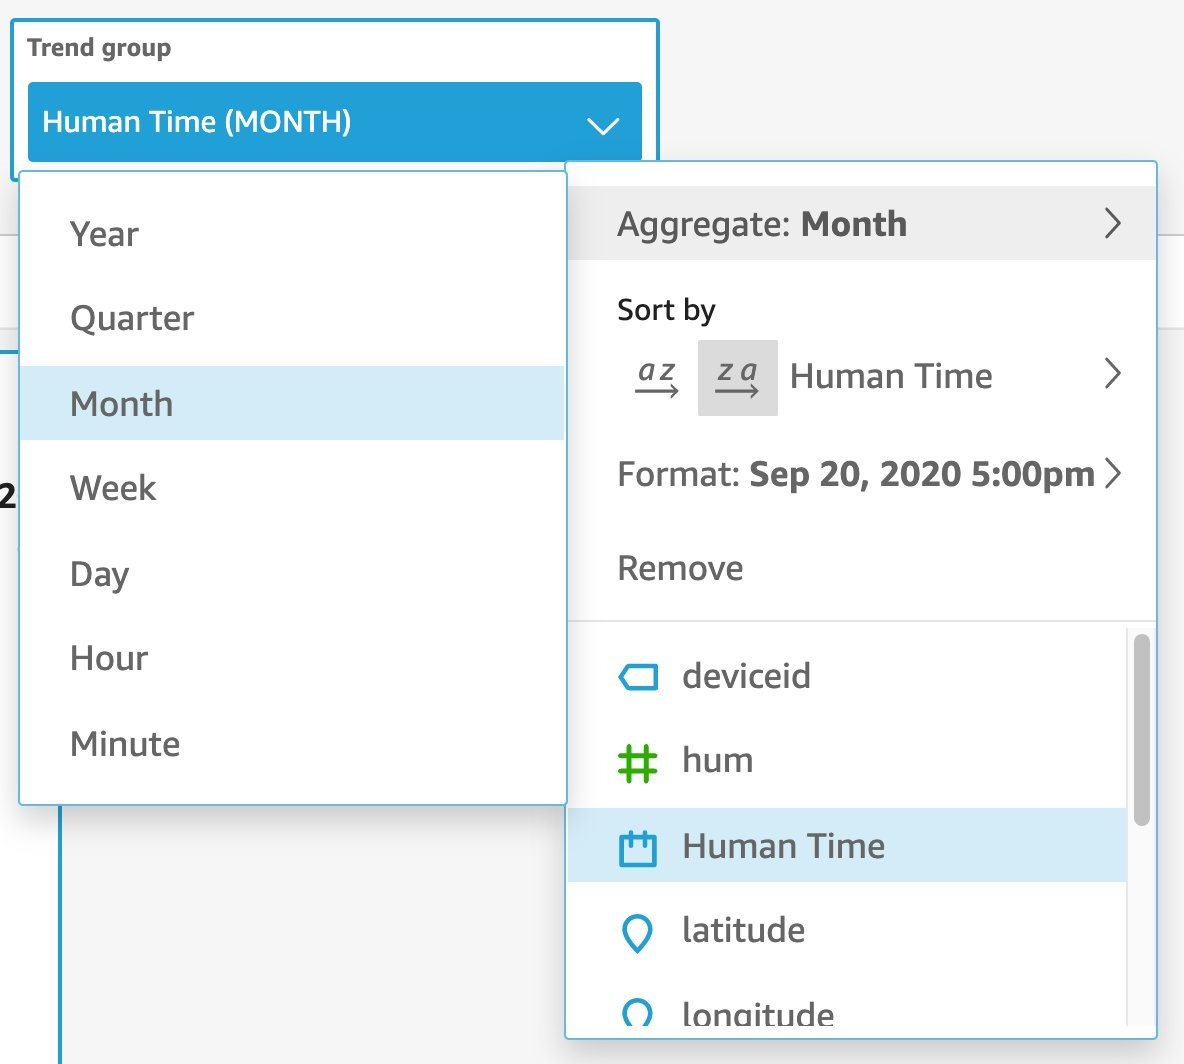 Trend group menu showing Human Time selected with Aggregate options available